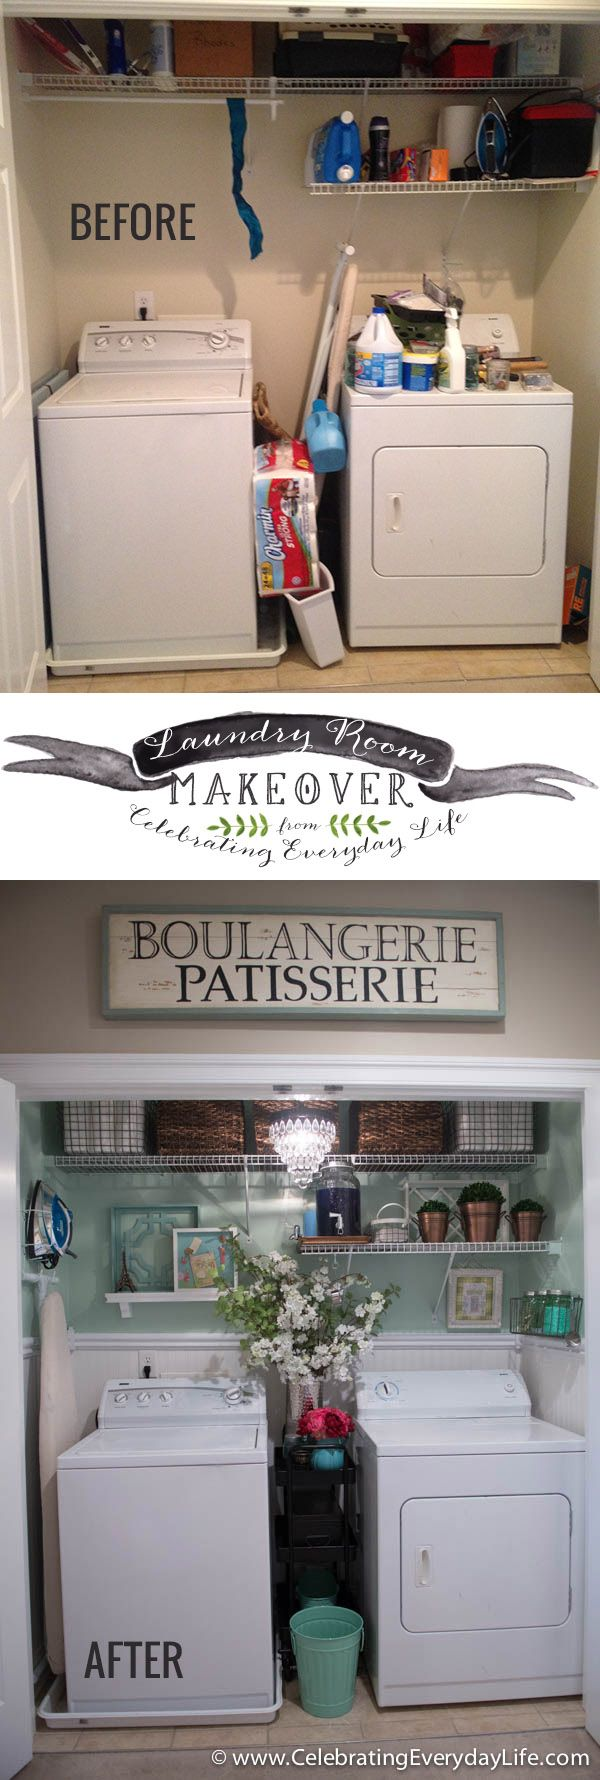 Before & After, My Laundry Room Makeover | Celebrating everyday life with Jennifer Carroll